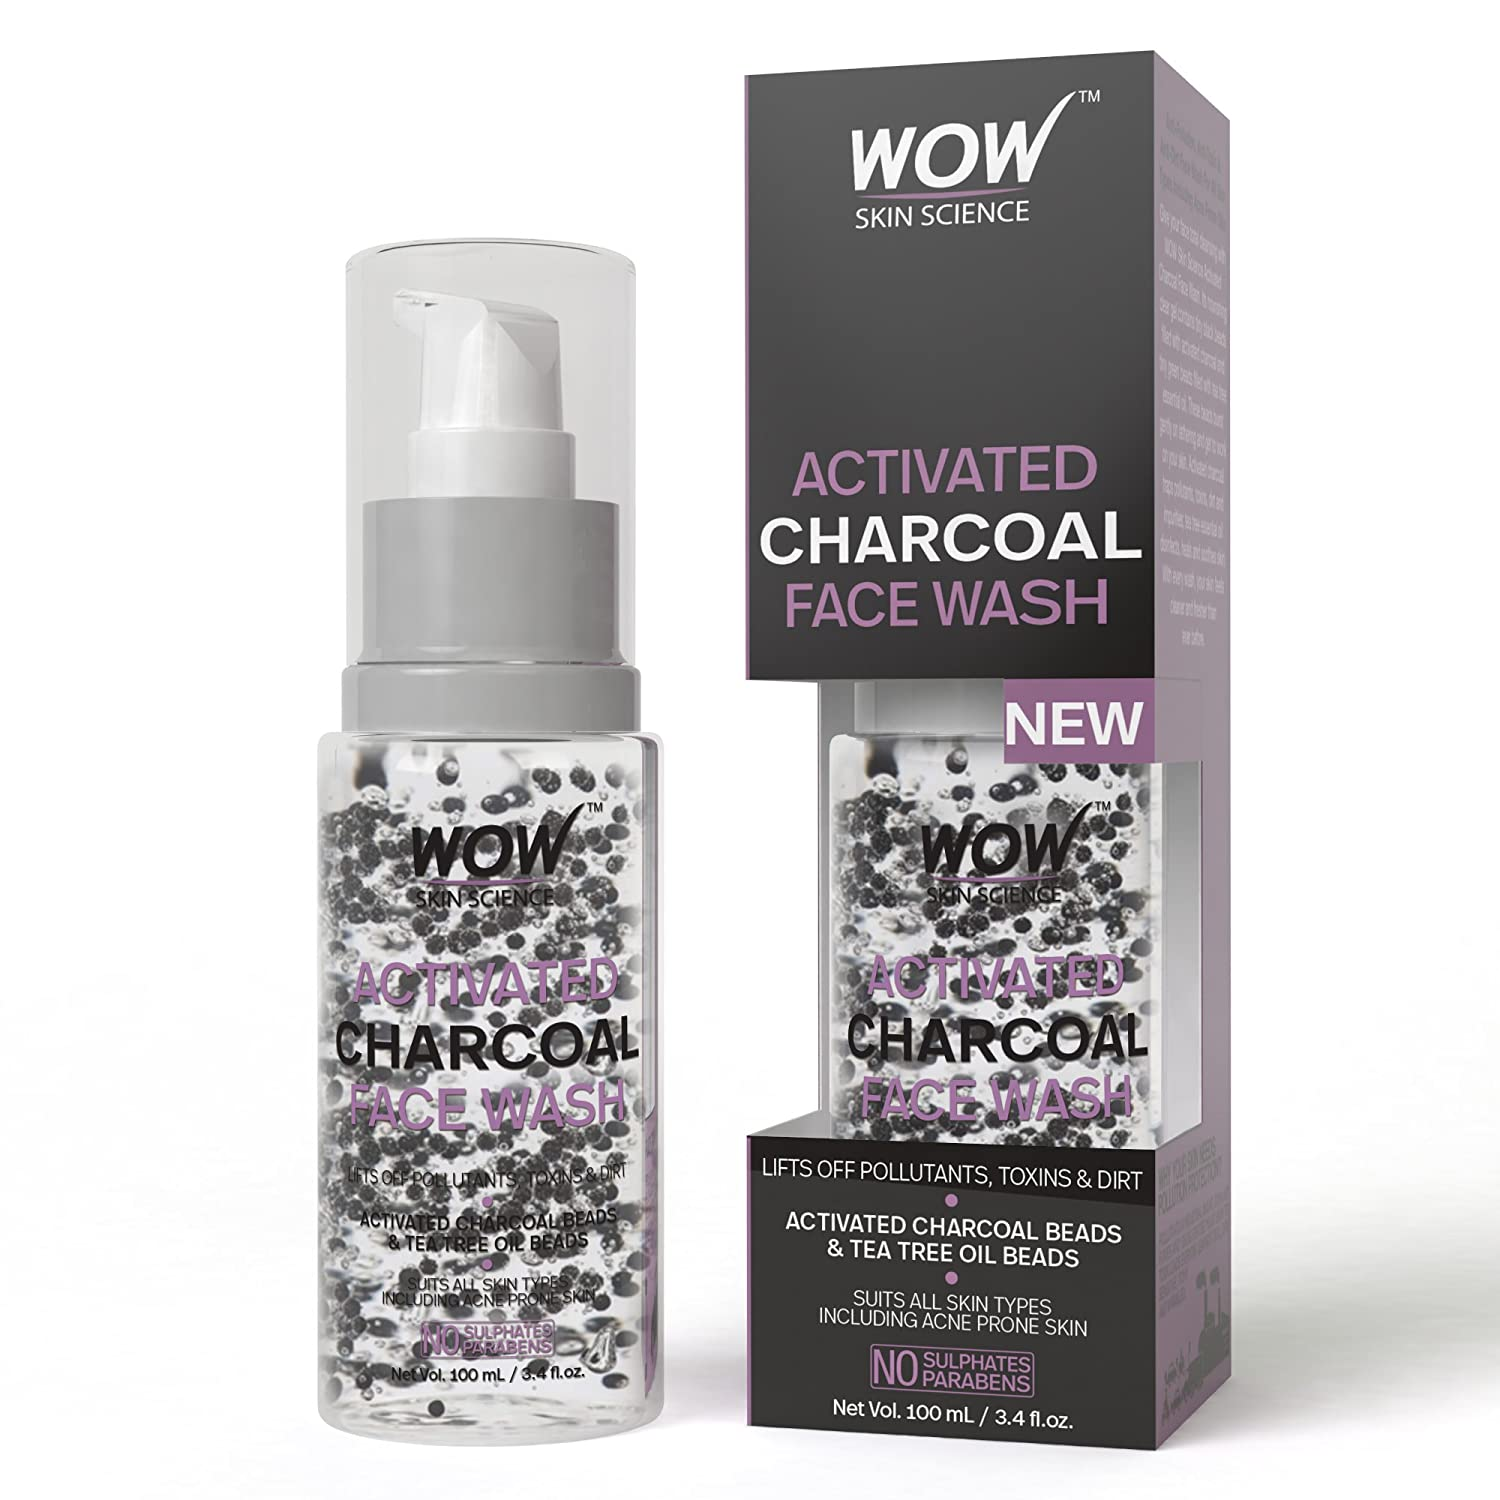 WOW Activated Charcoal infused with Activated Charcoal Beads